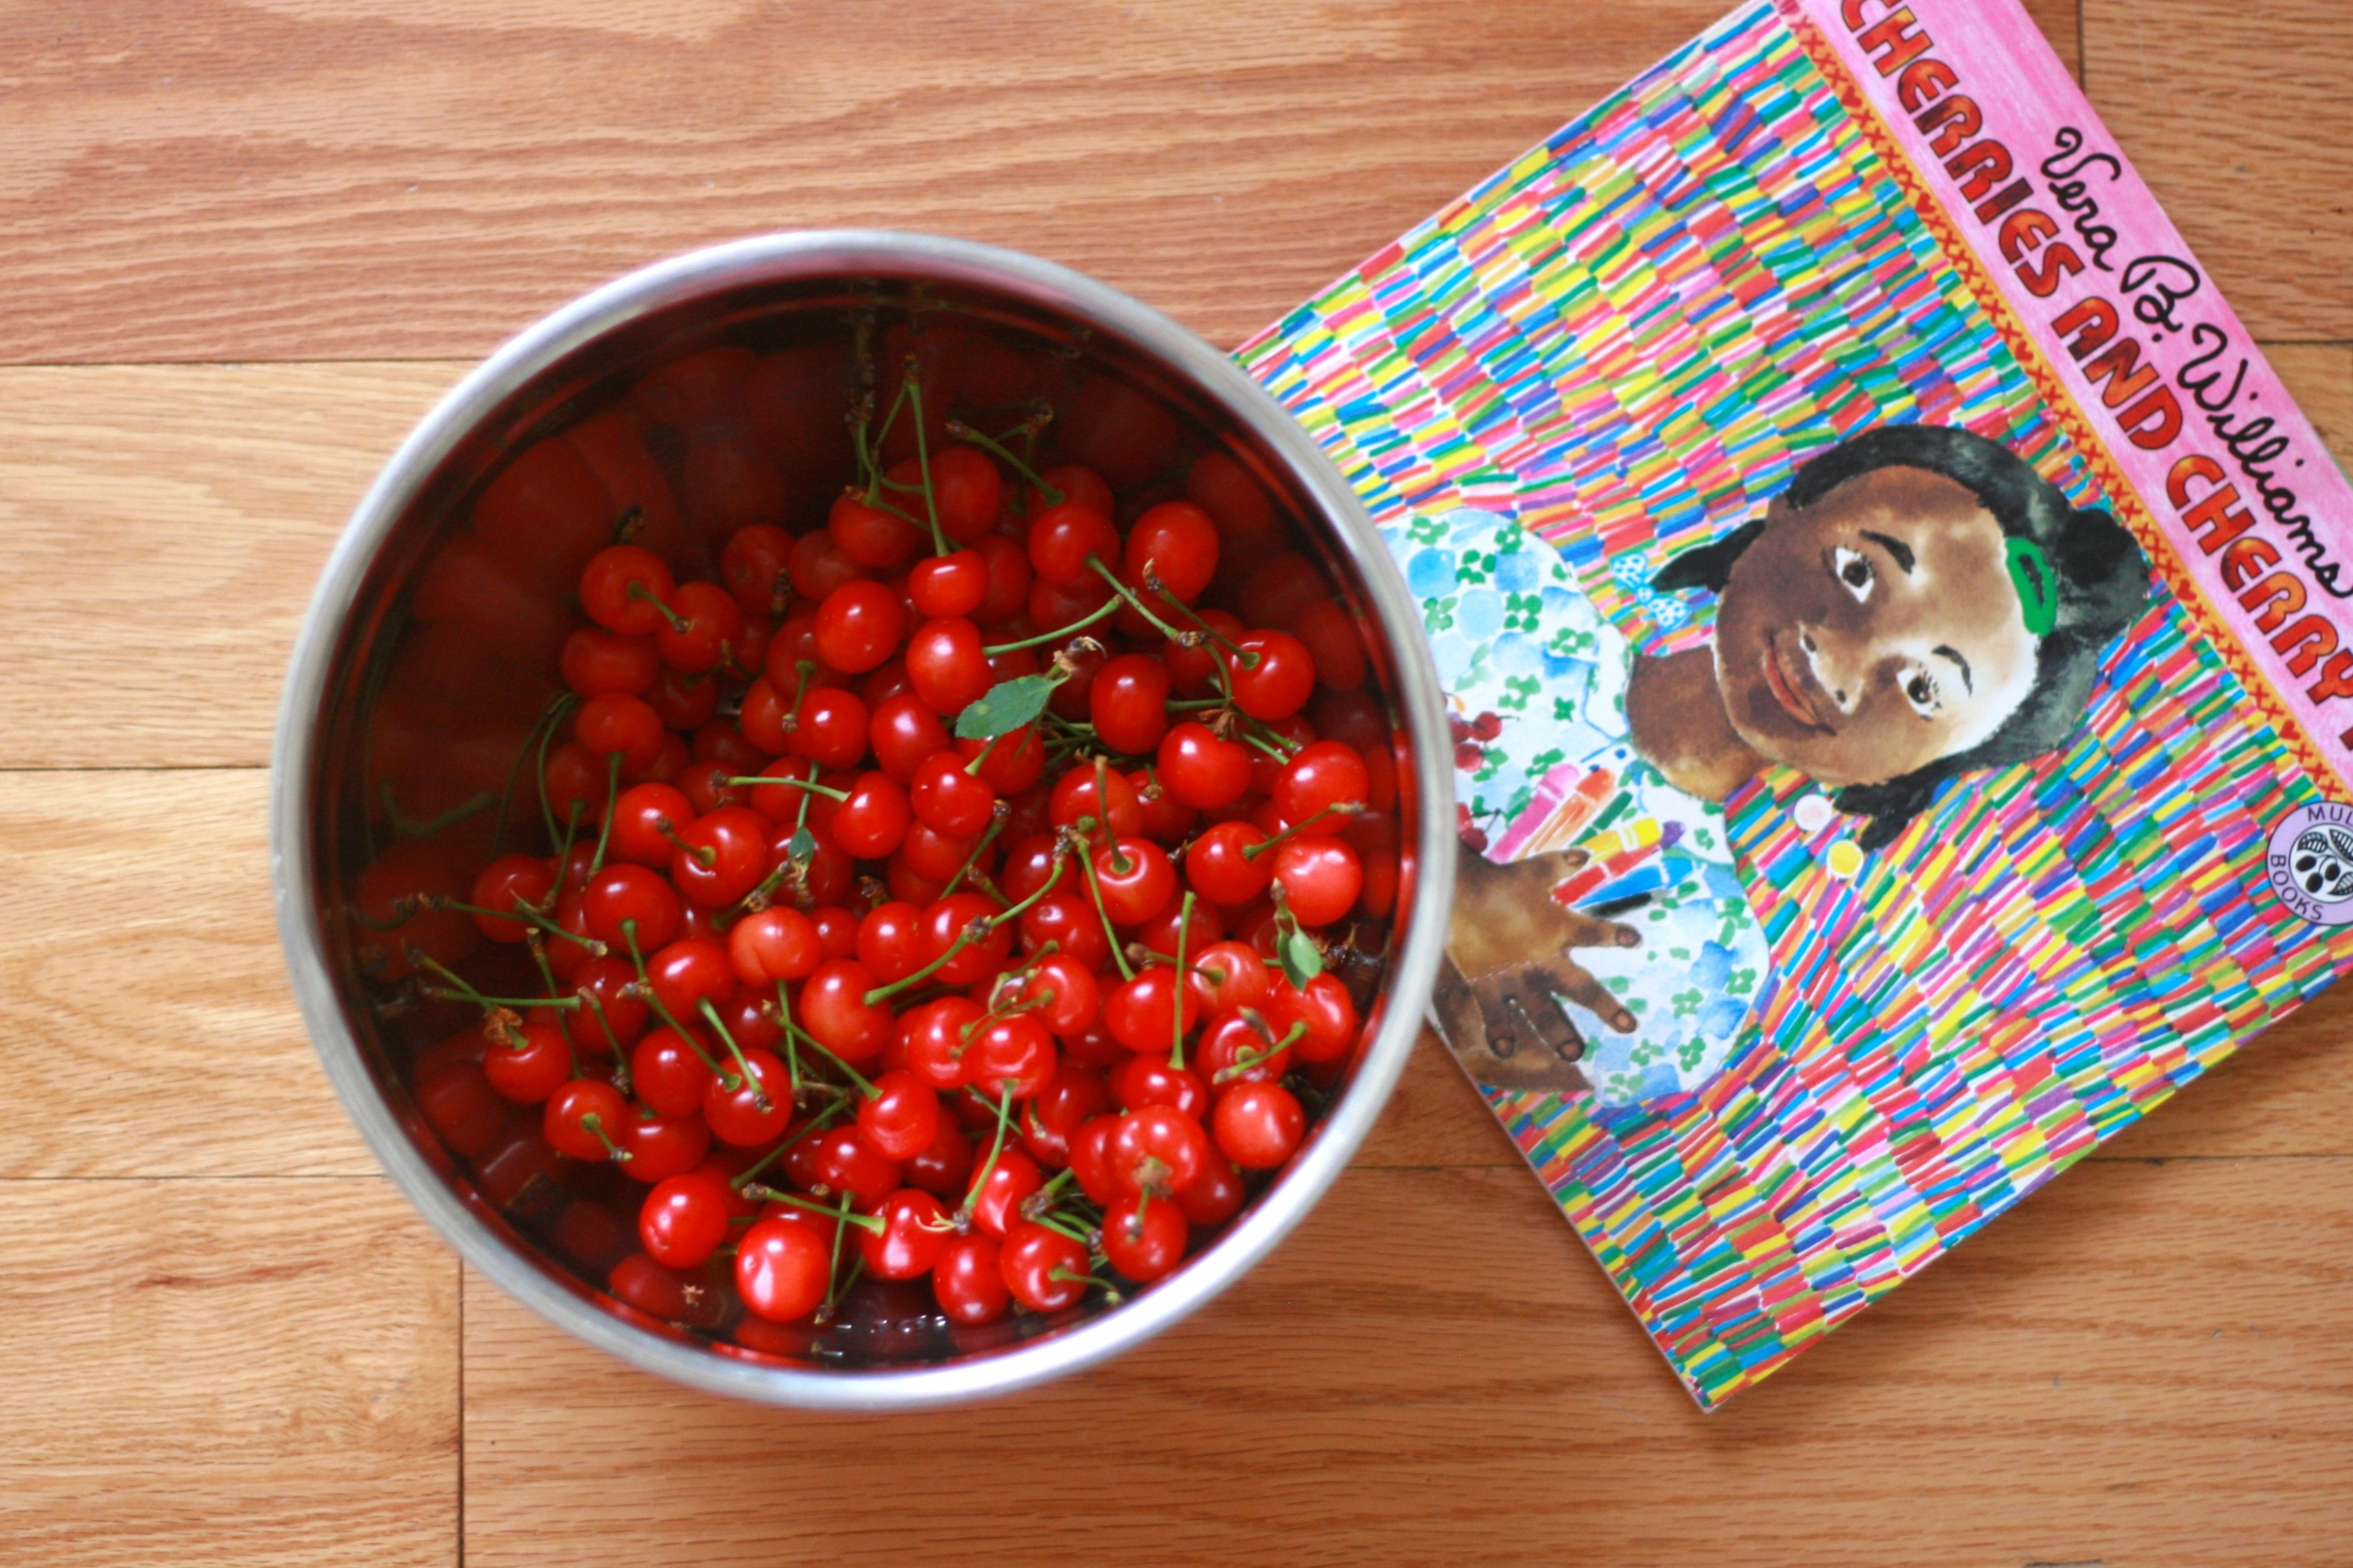 Some of our backyard cherry spoils, plus our family's favorite cherry-themed book,  Cherries and Cherry Pits